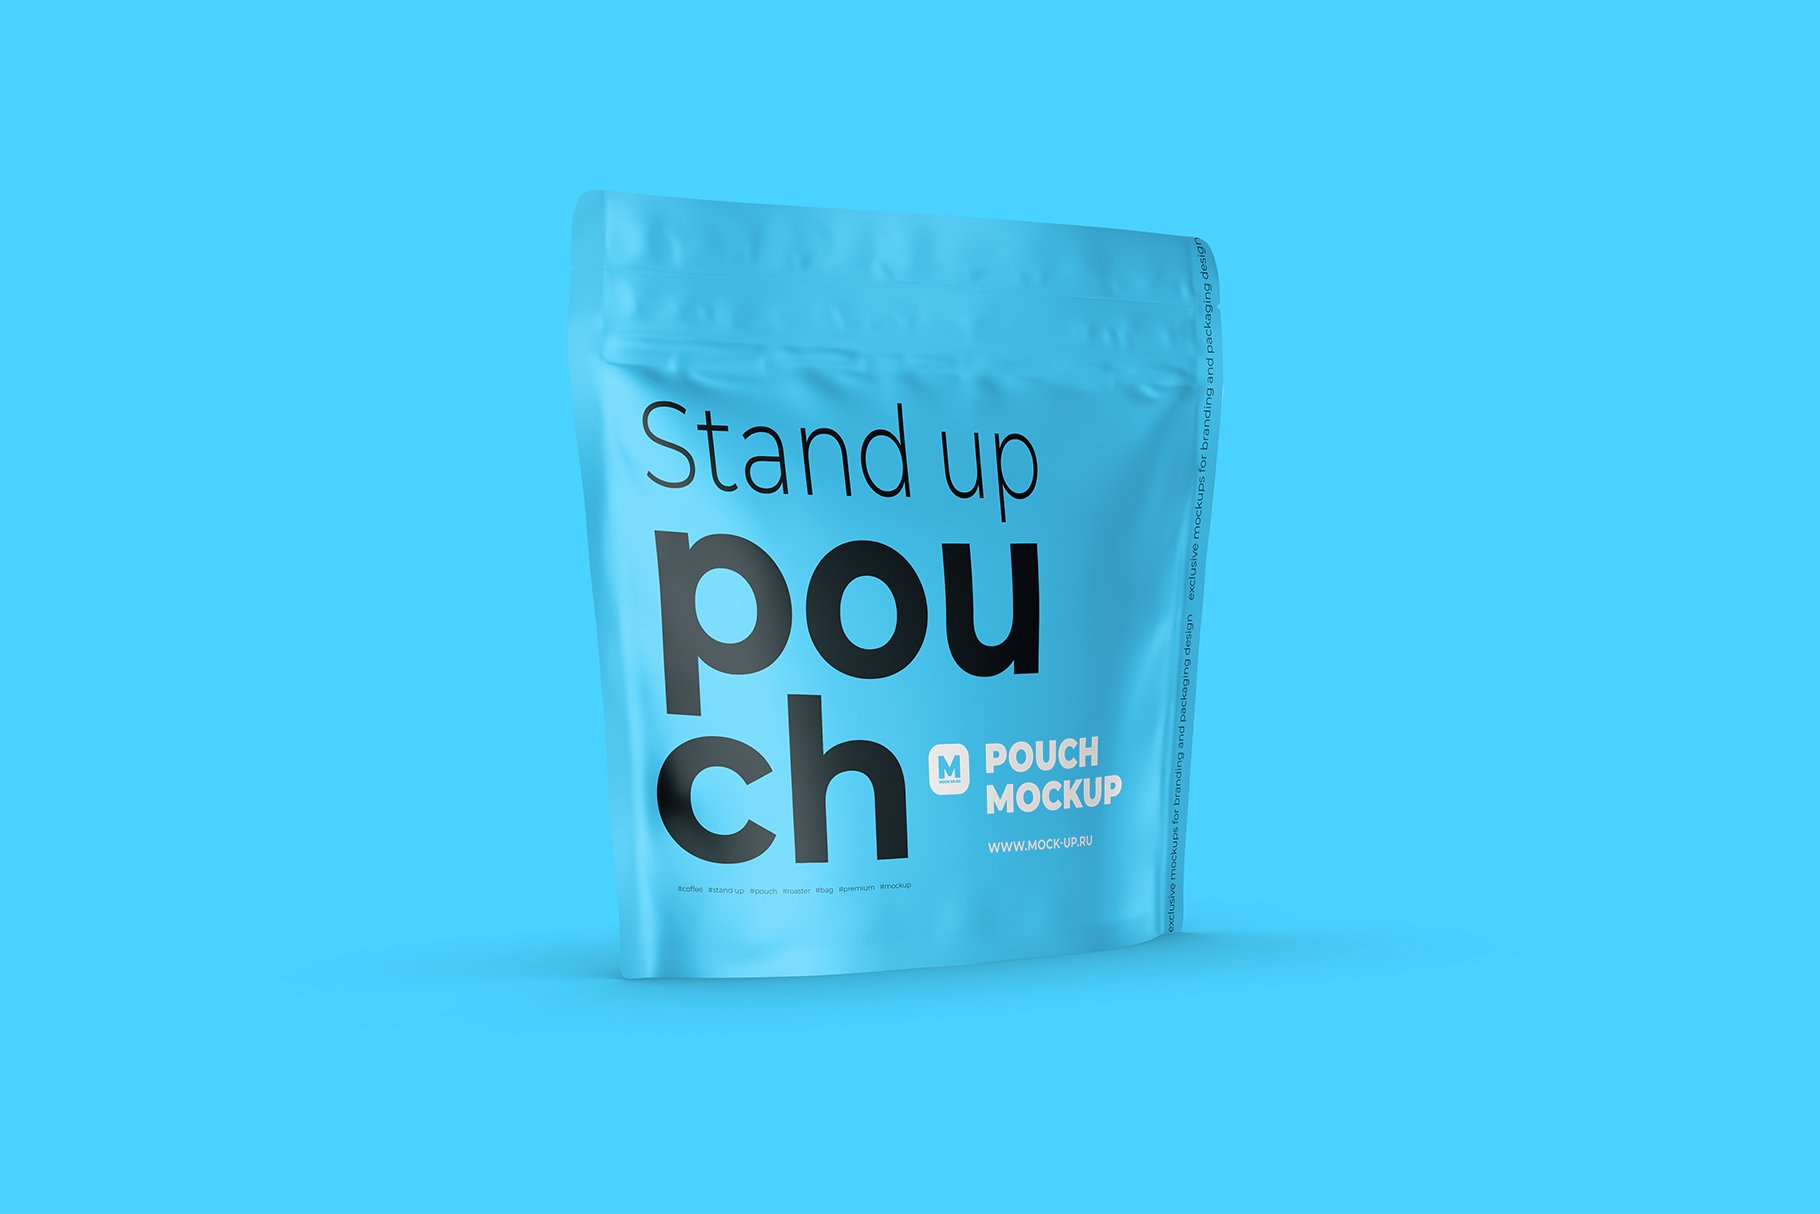 Zip Stand-up Pouch Mockup square example image 6